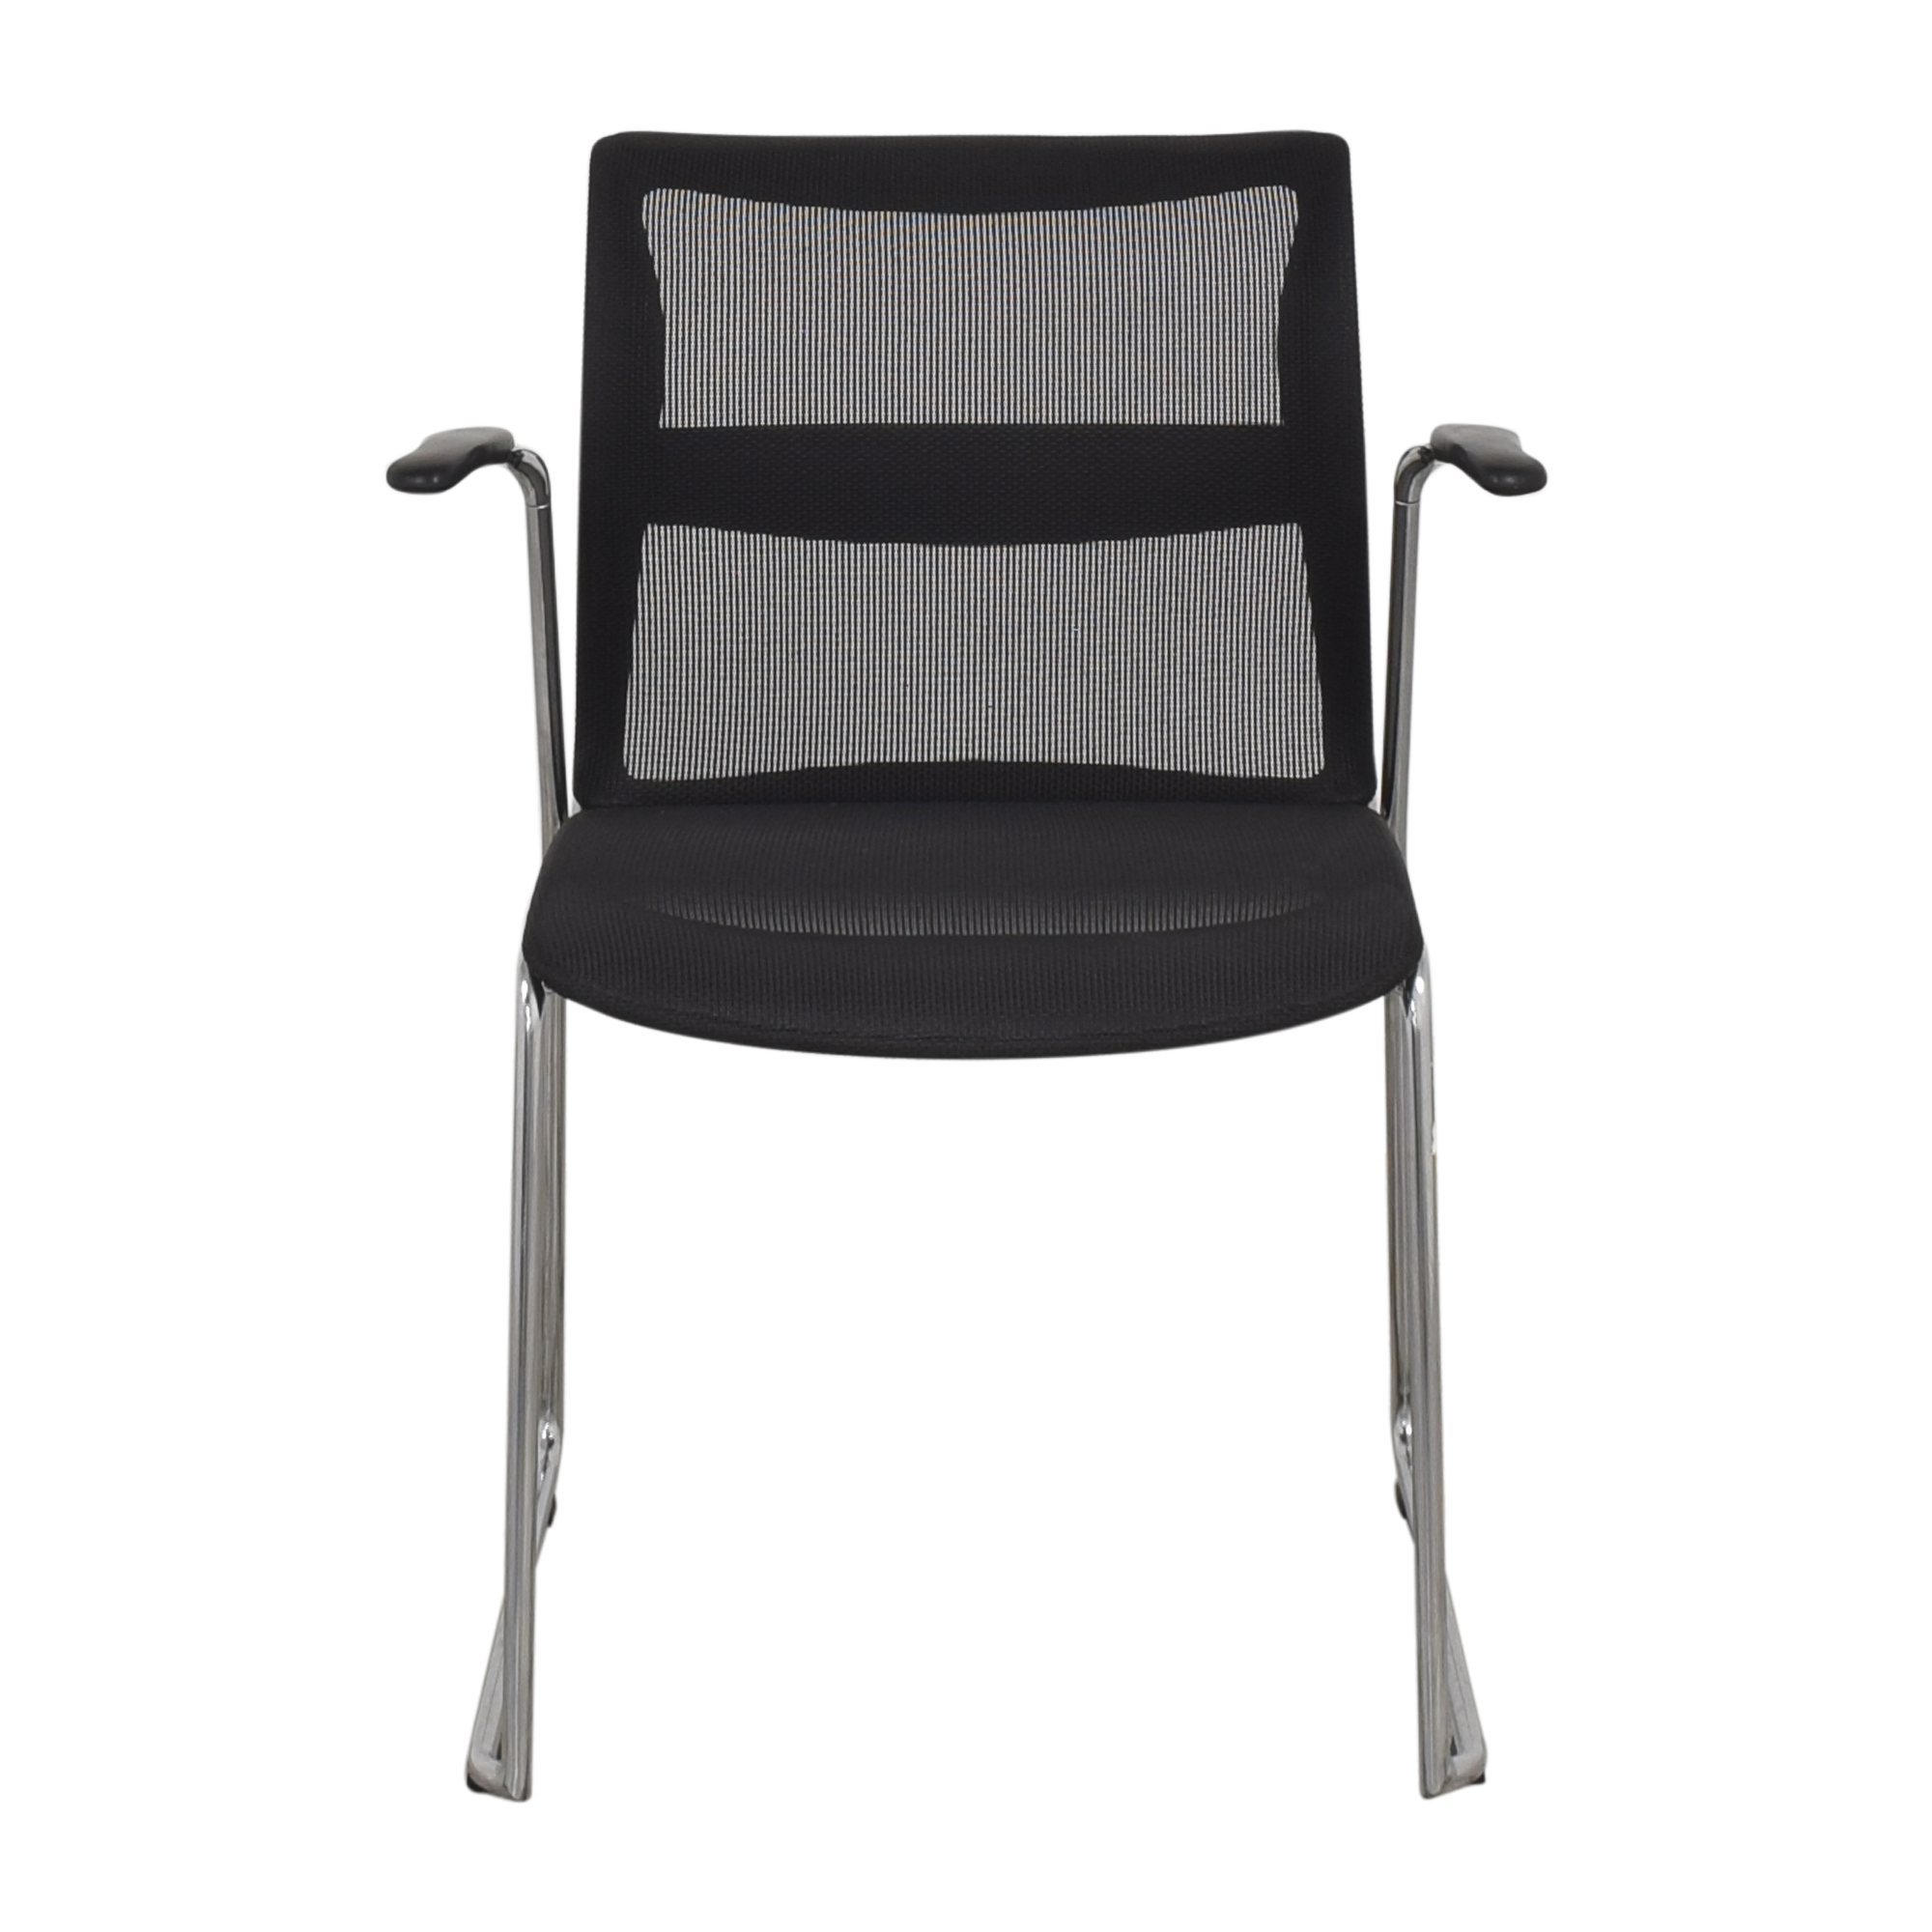 buy Stylex Zephyr Stacking Arm Chair Stylex Home Office Chairs